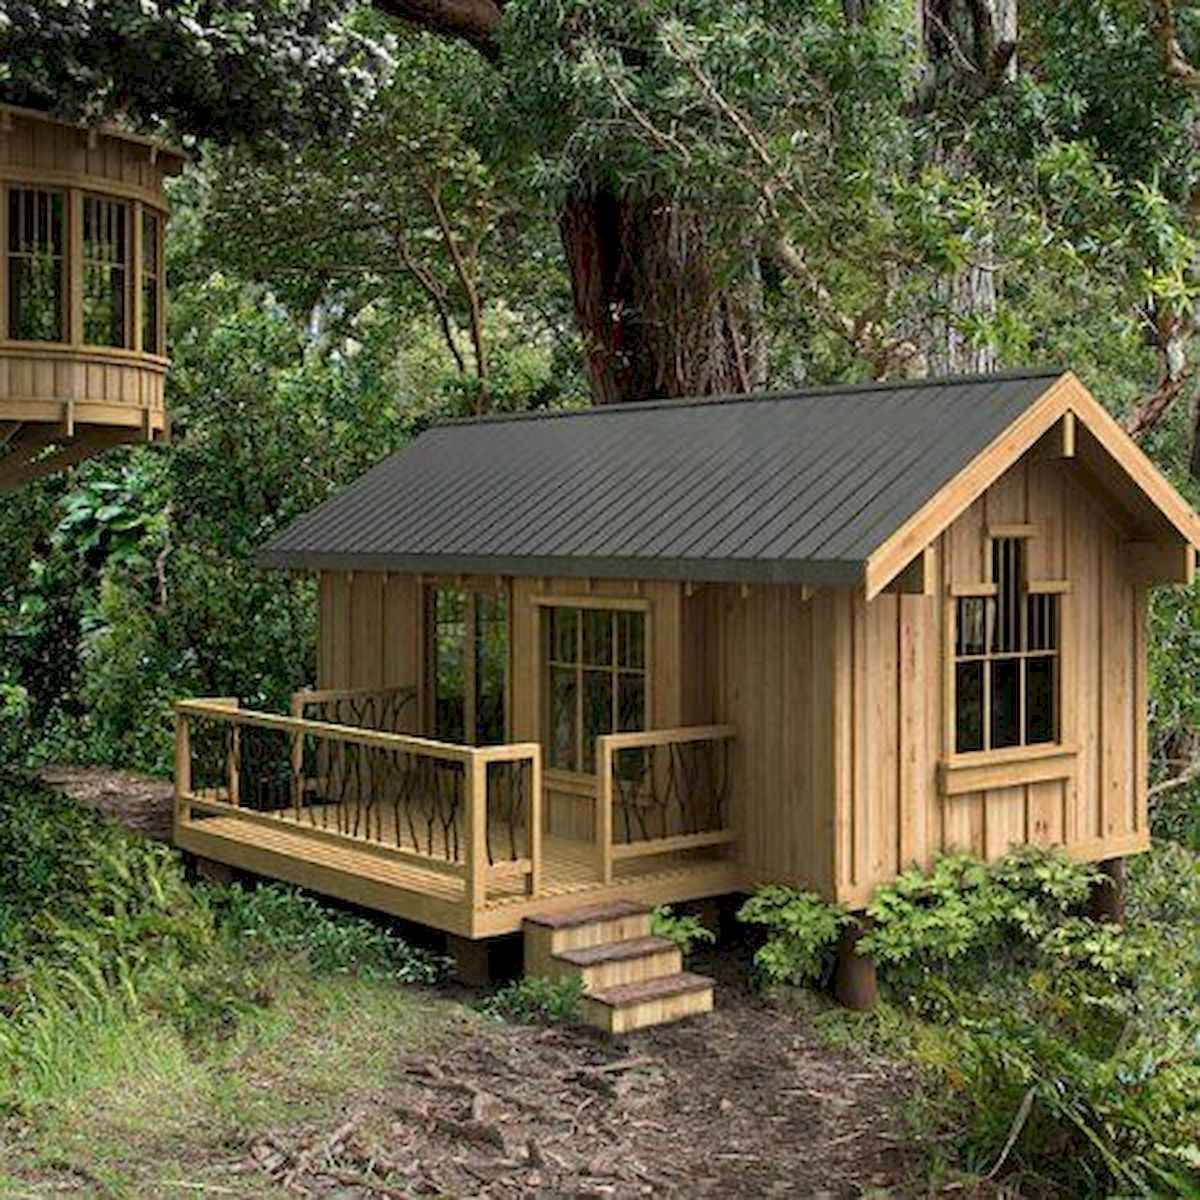 60 Beautiful Tiny House Plans Small Cottages Design Ideas (14)